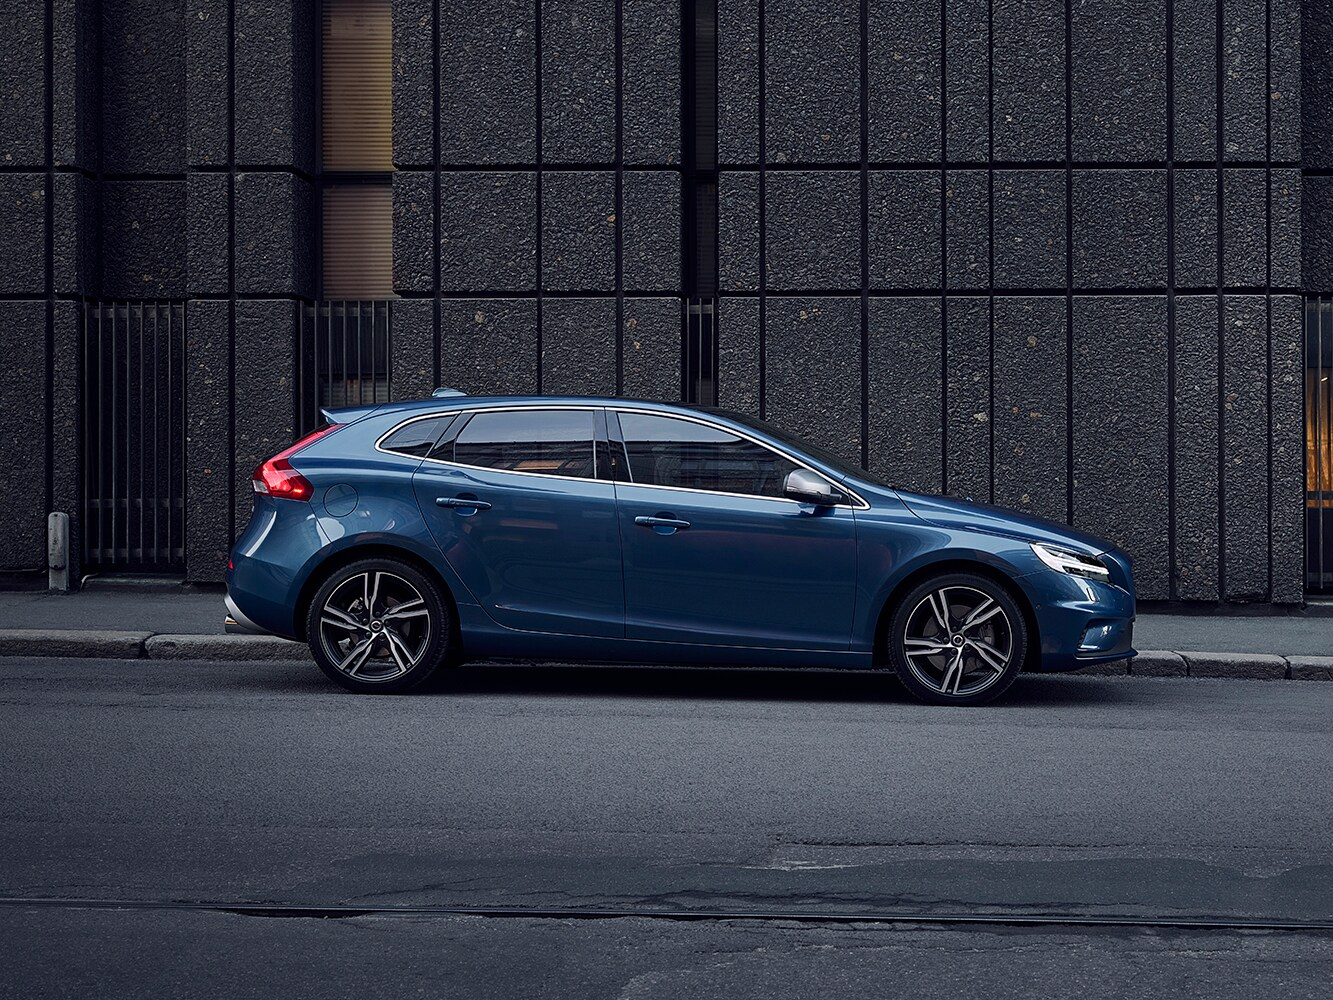 Side view of the Volvo V40 R-Design facing right